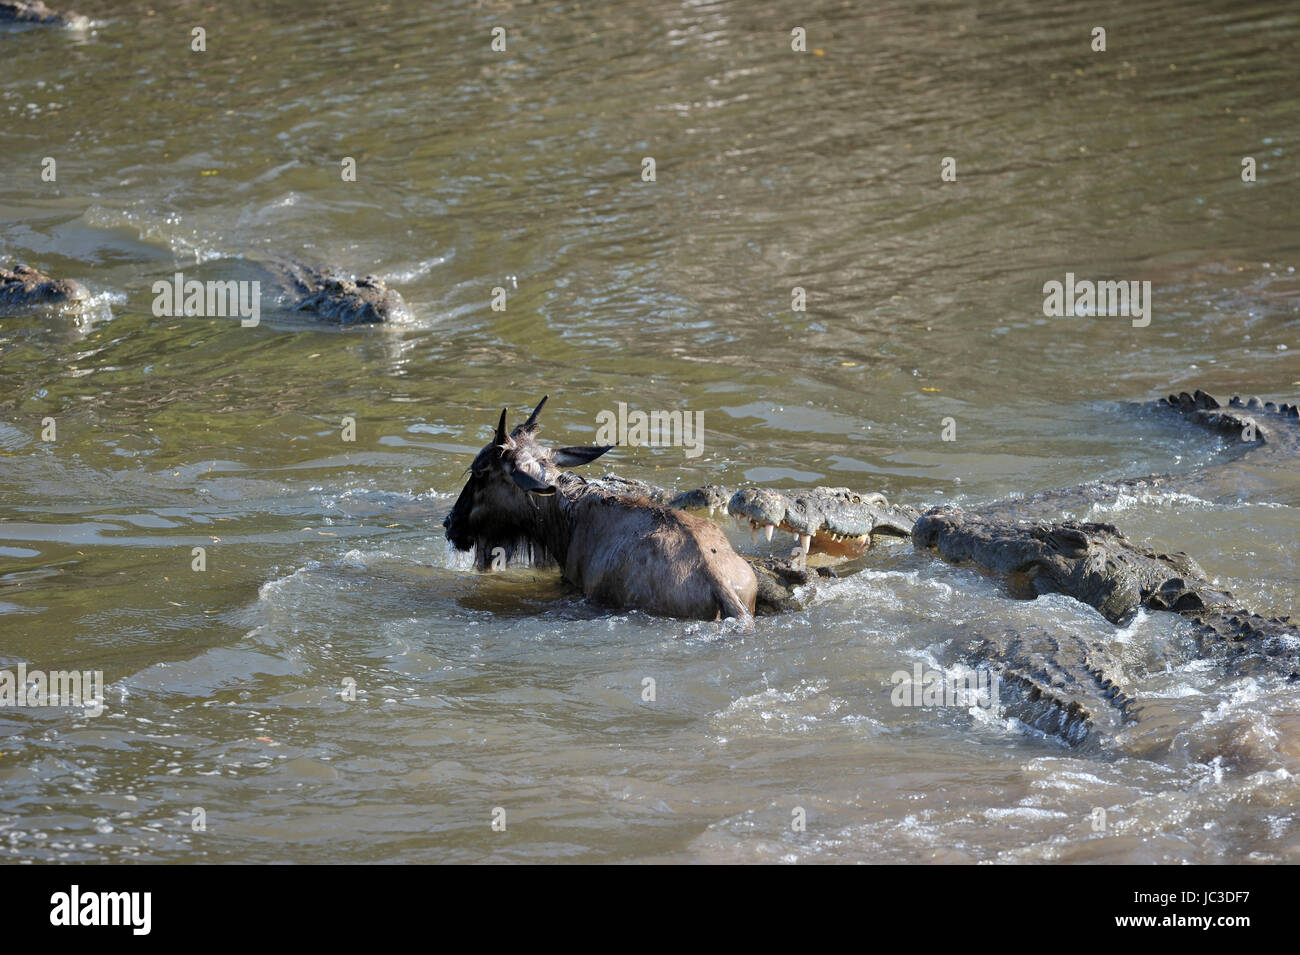 Nile Crocodile (Crocodylus niloticus) catching young Wildebeest (Connochaetes taurinus), Grumeti river, Serengeti - Stock Image